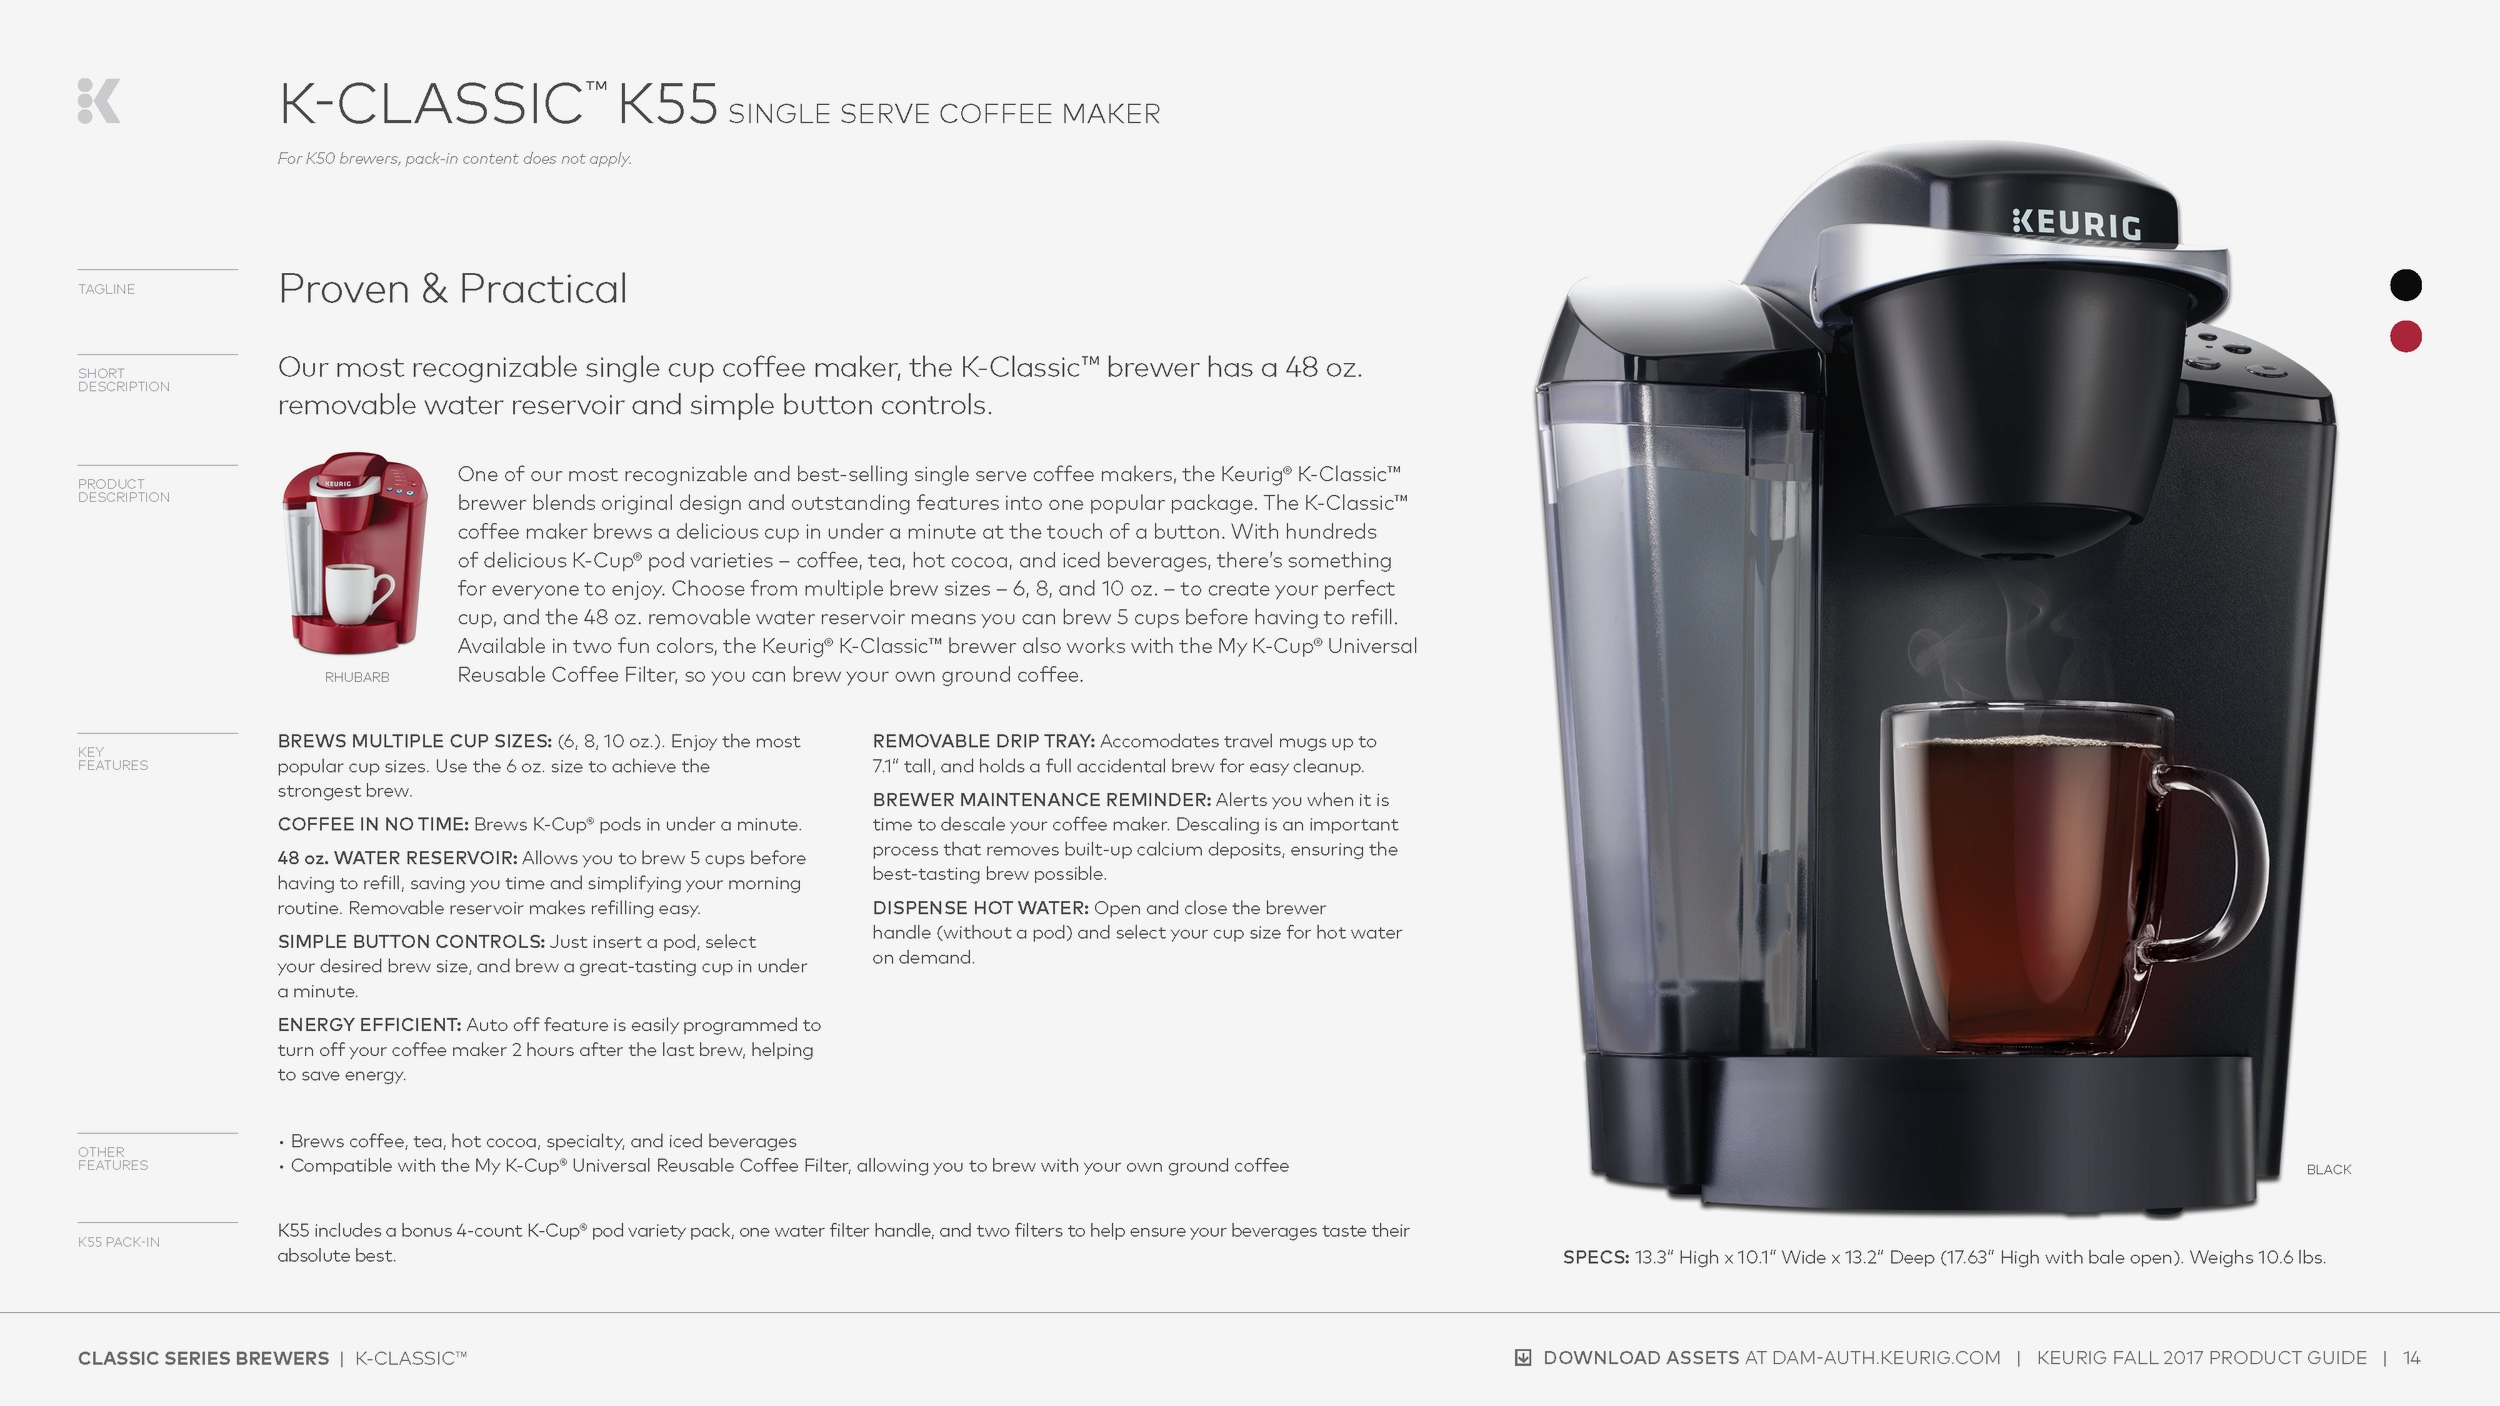 keurig_product_guide_F17_R8_Page_14.png